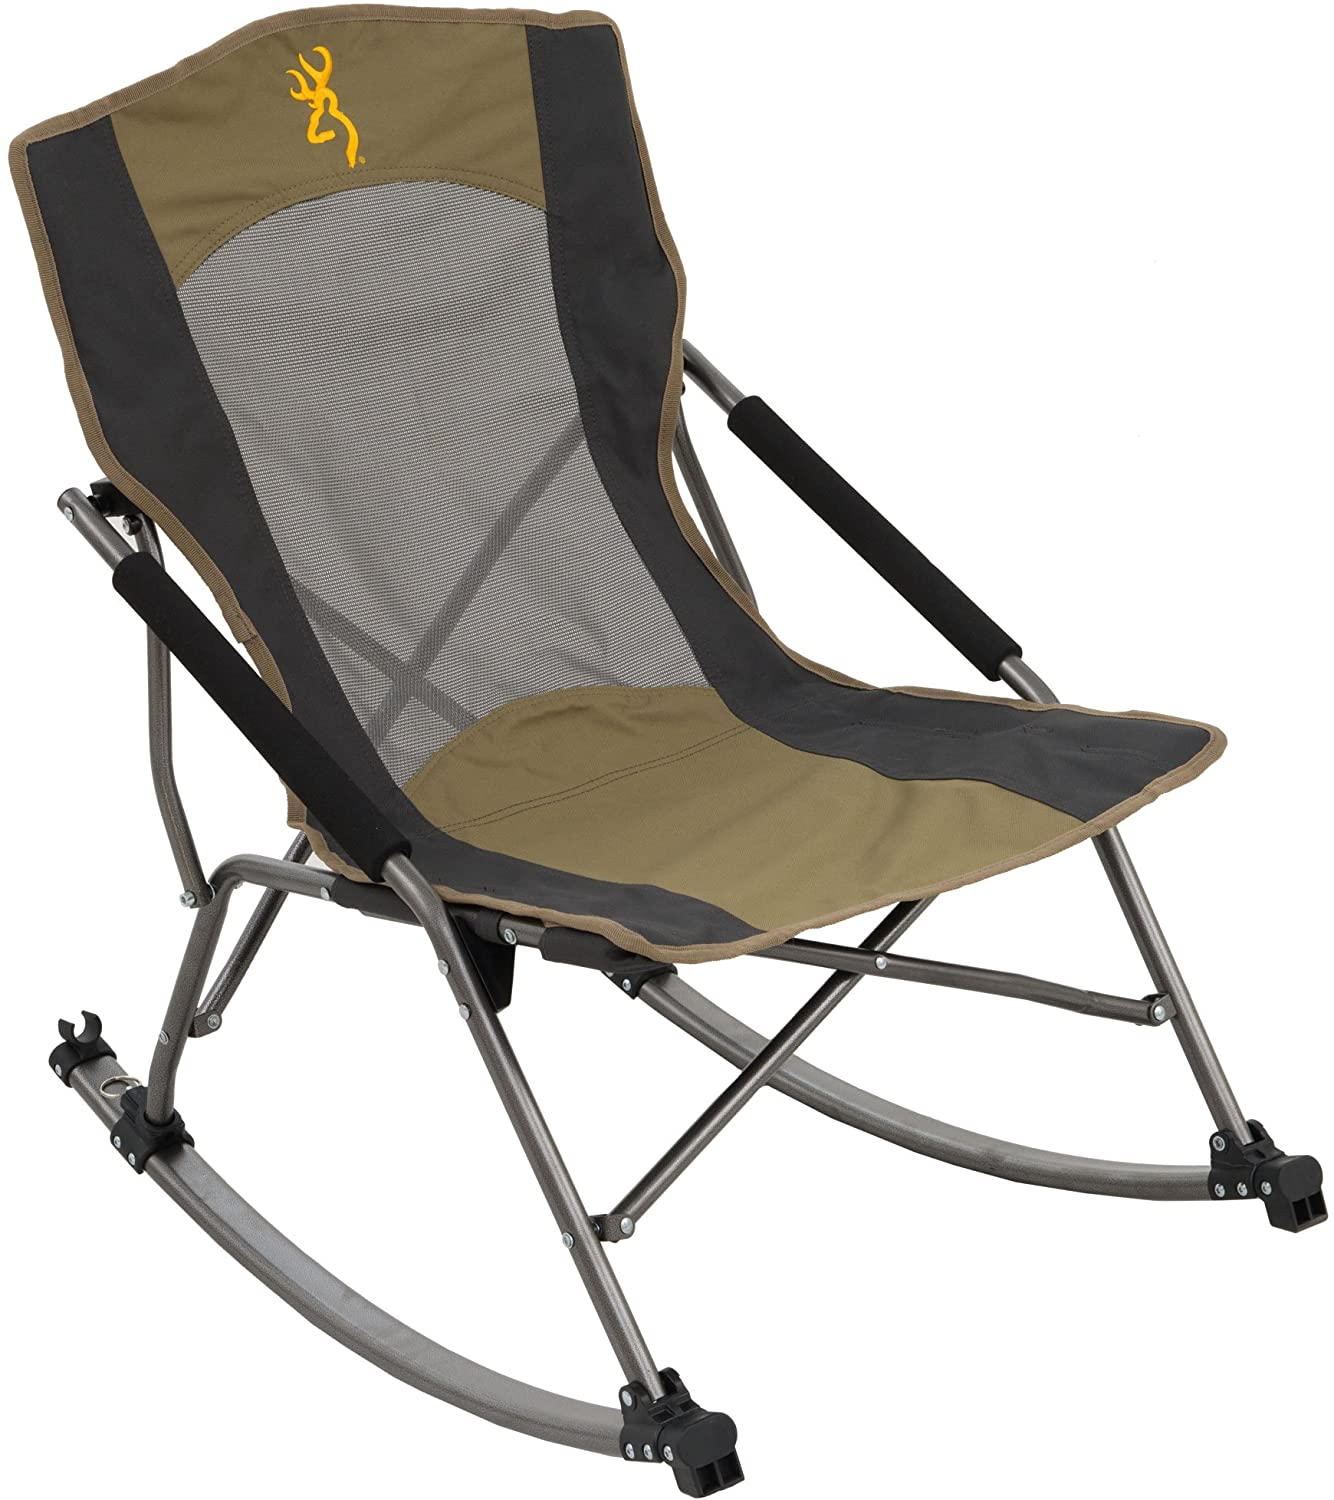 Browning Camping Cabin Chair